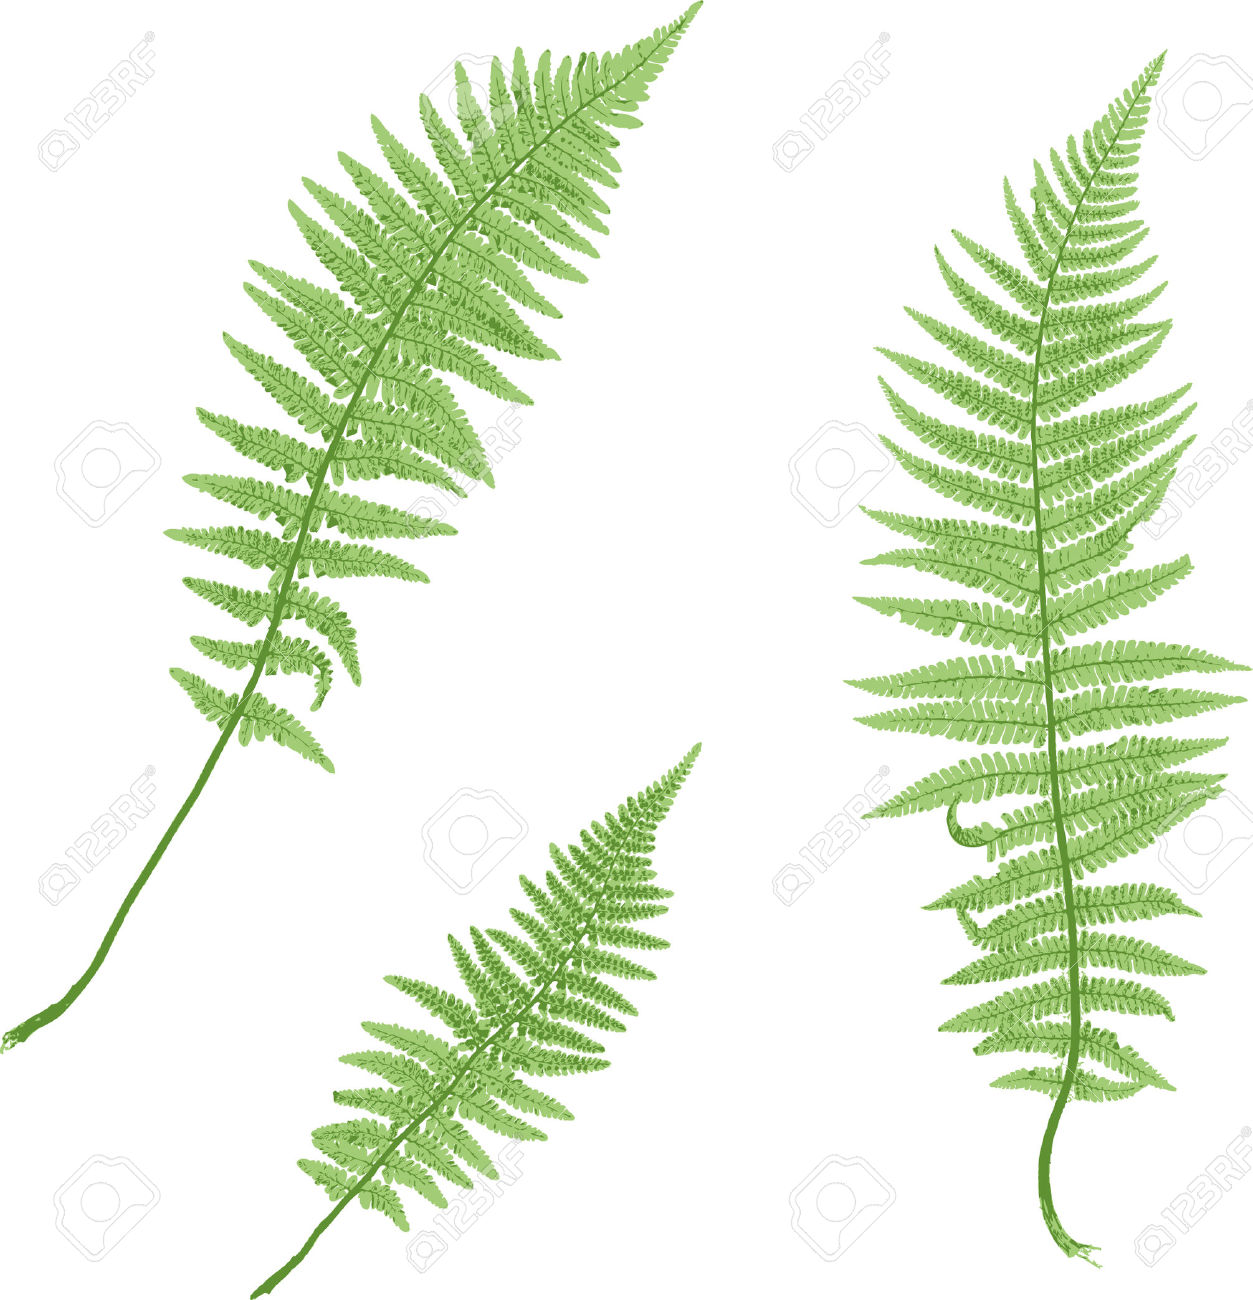 1253x1300 Foliage Clipart Fern Leaf Free Collection Download And Share